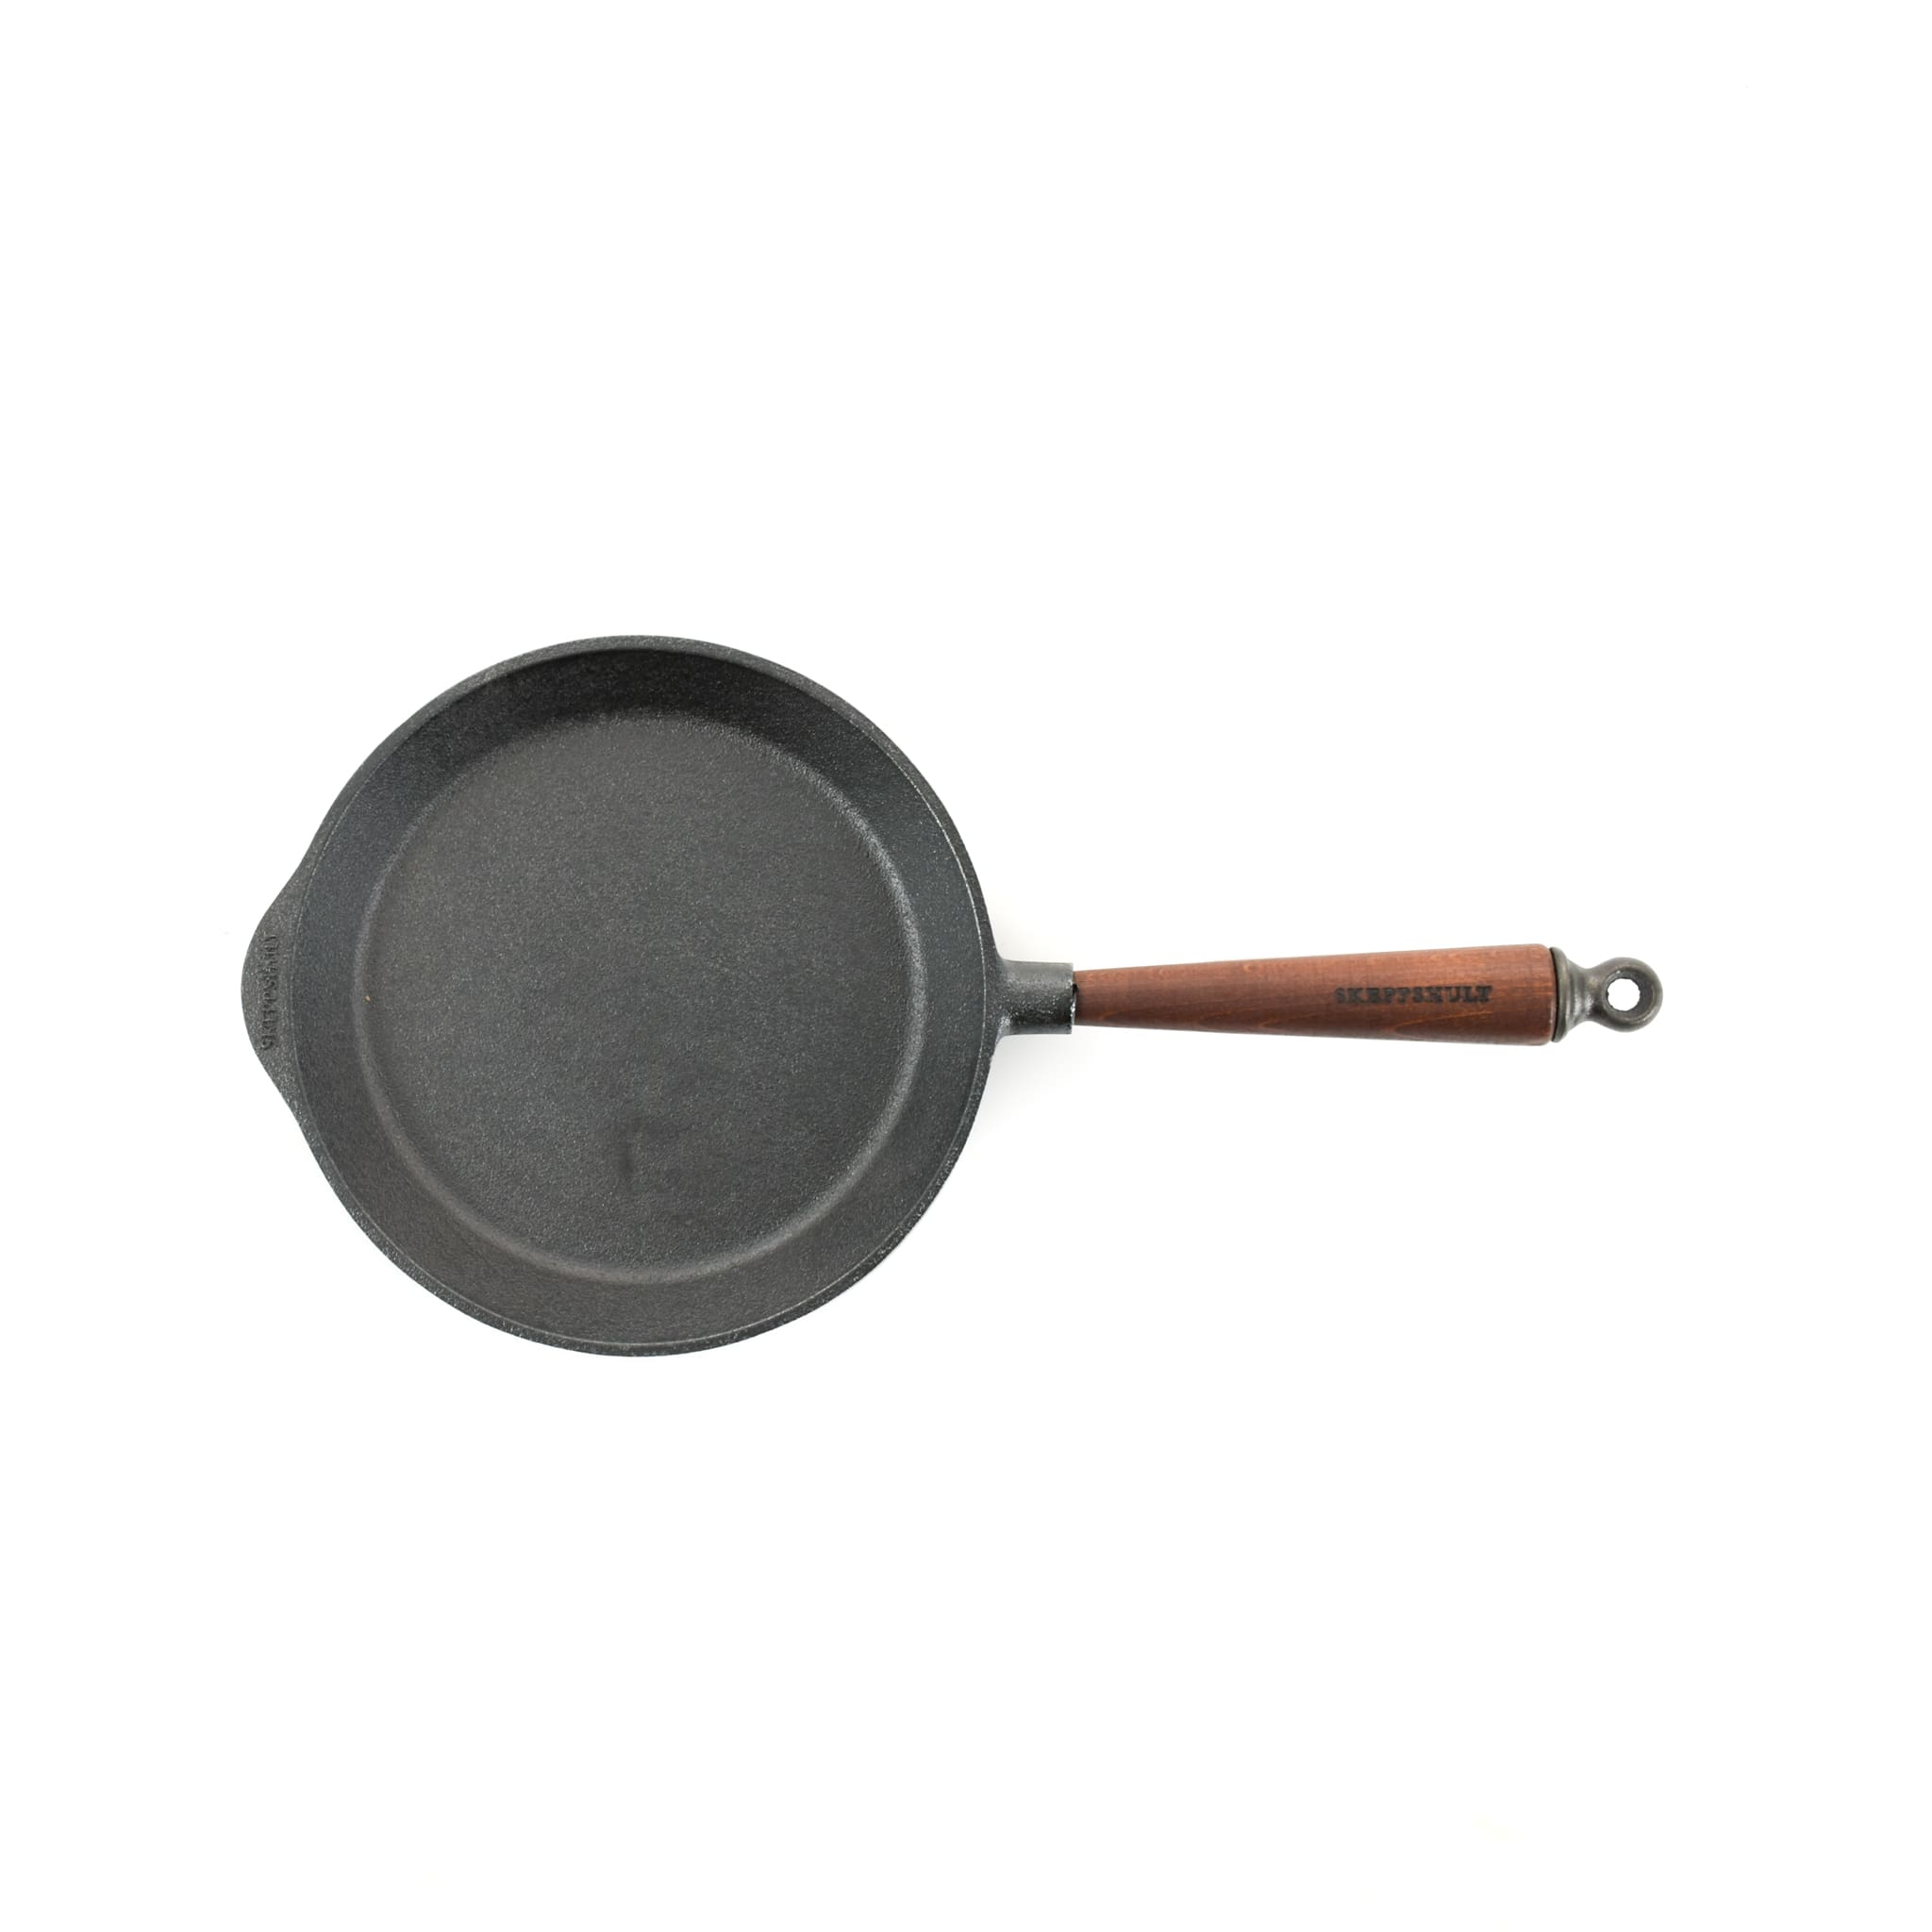 Skeppshult Traditional Cast Iron Frying Pan